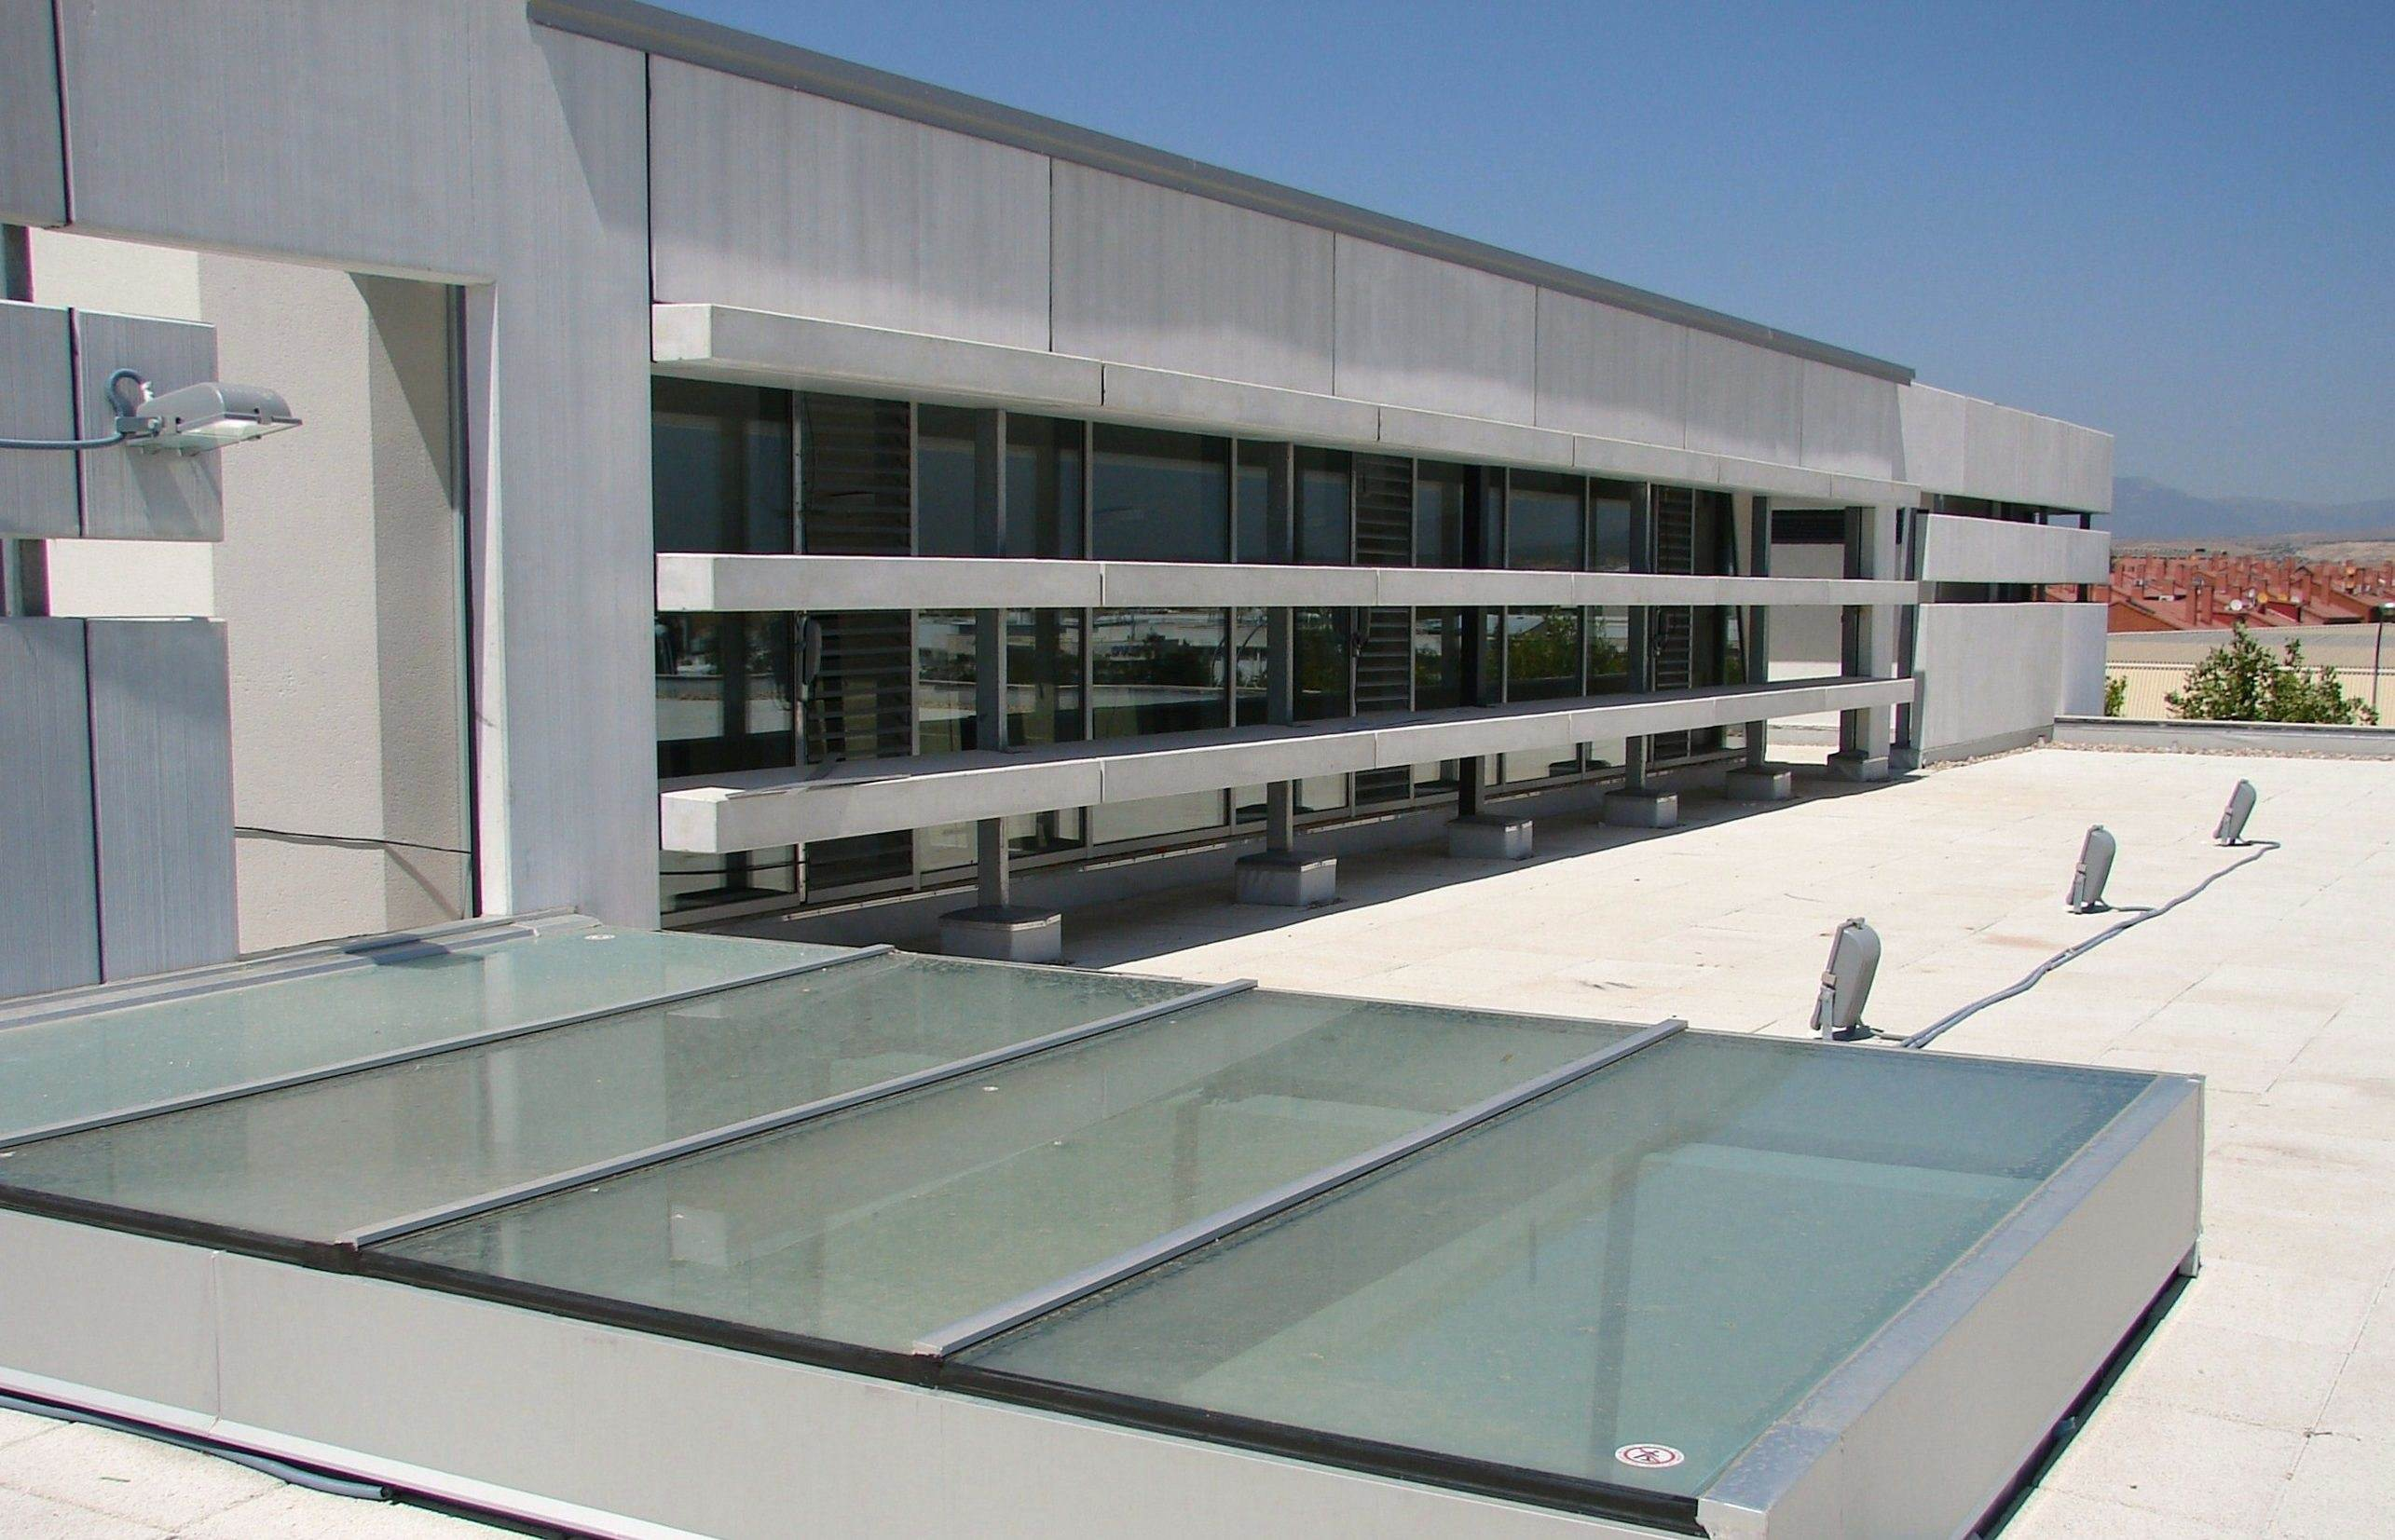 The Best Flat Roof Repair Experts In Louisville Ky